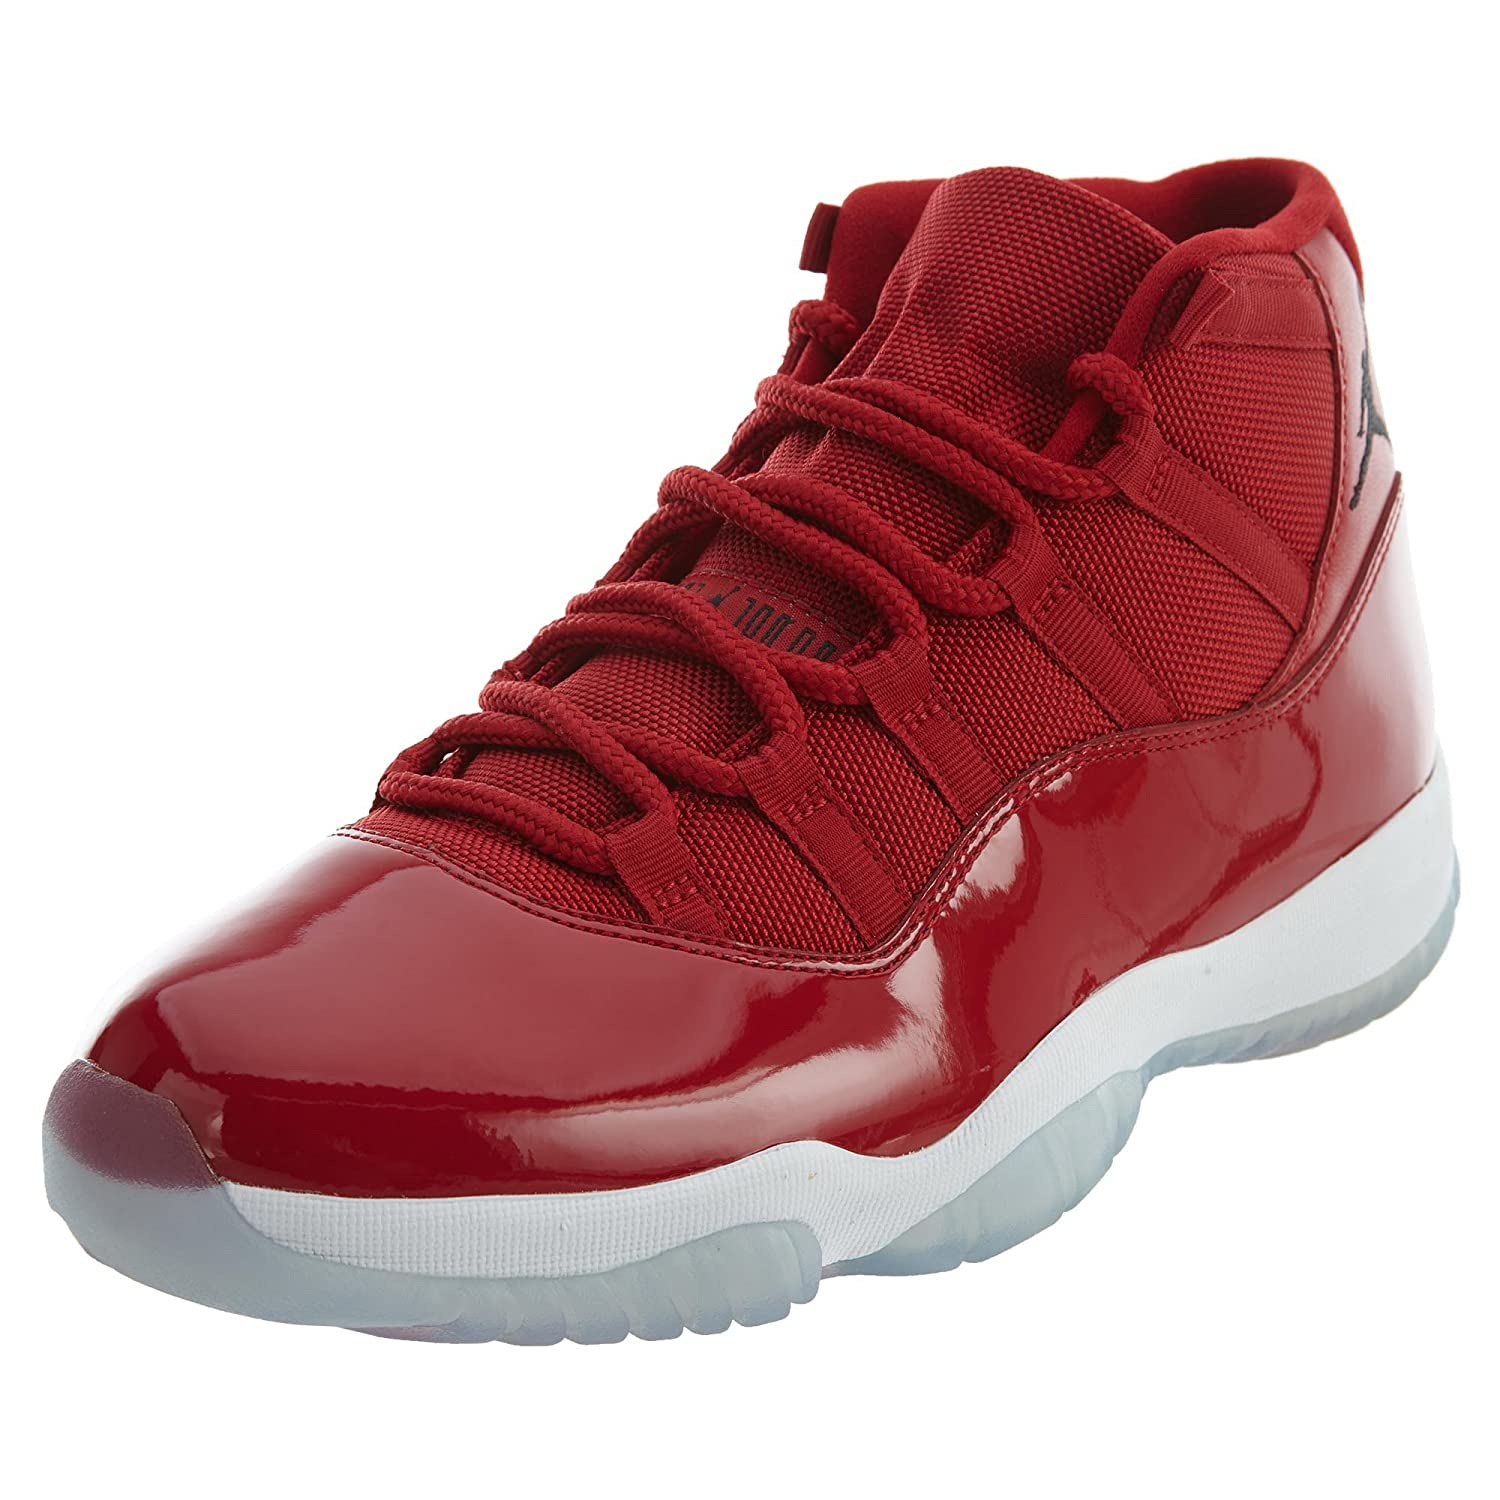 hot sale online 983b4 8a237 Amazon.com   NIKE Kids GS Air Jordan Retro 11